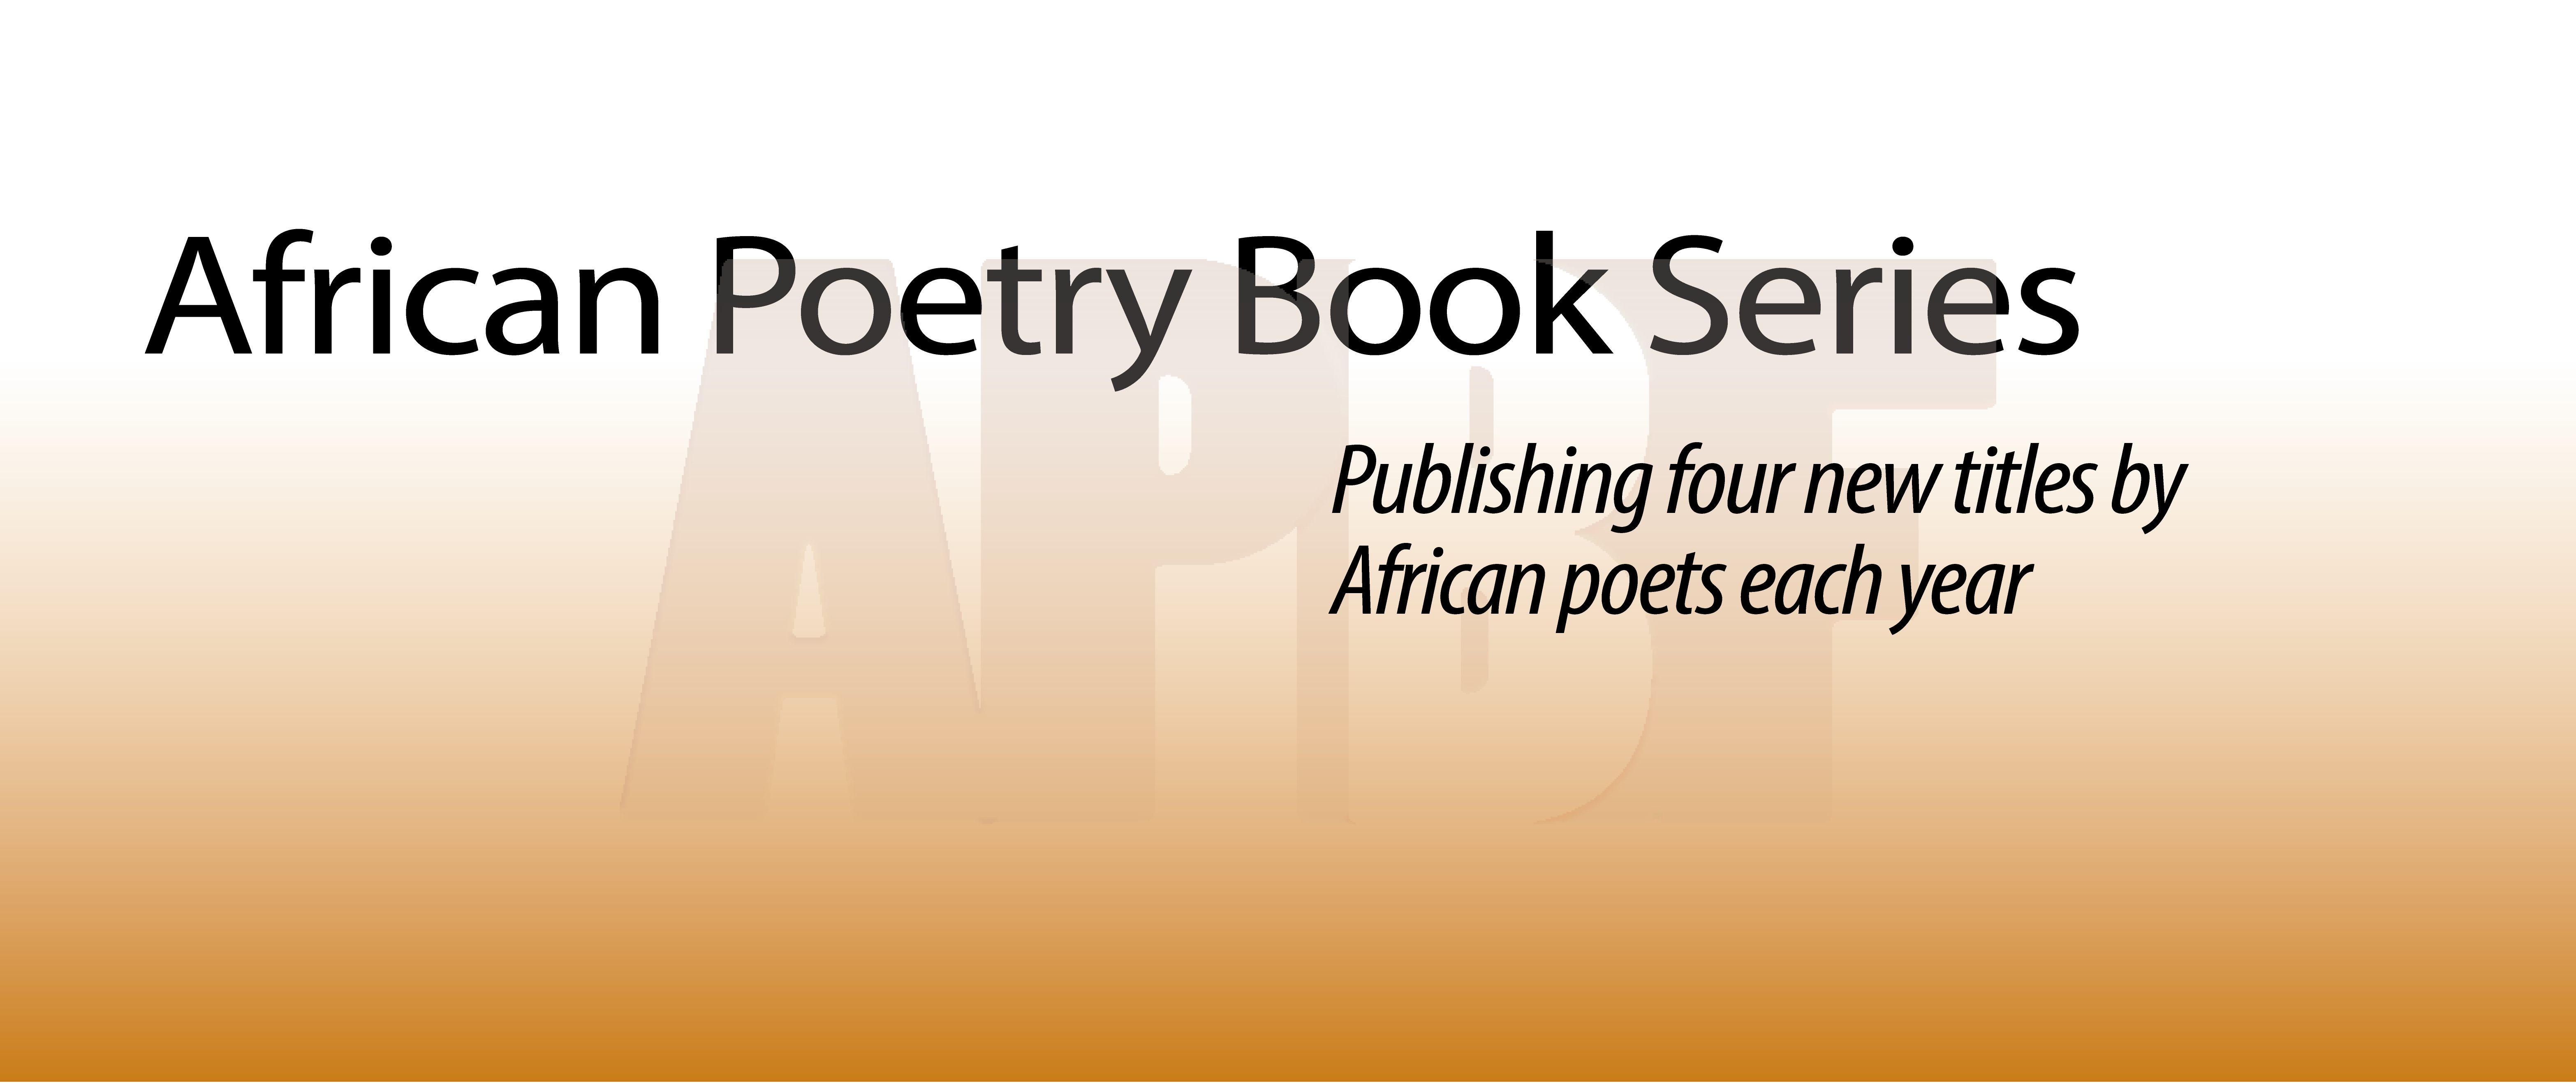 African Poetry Book Series